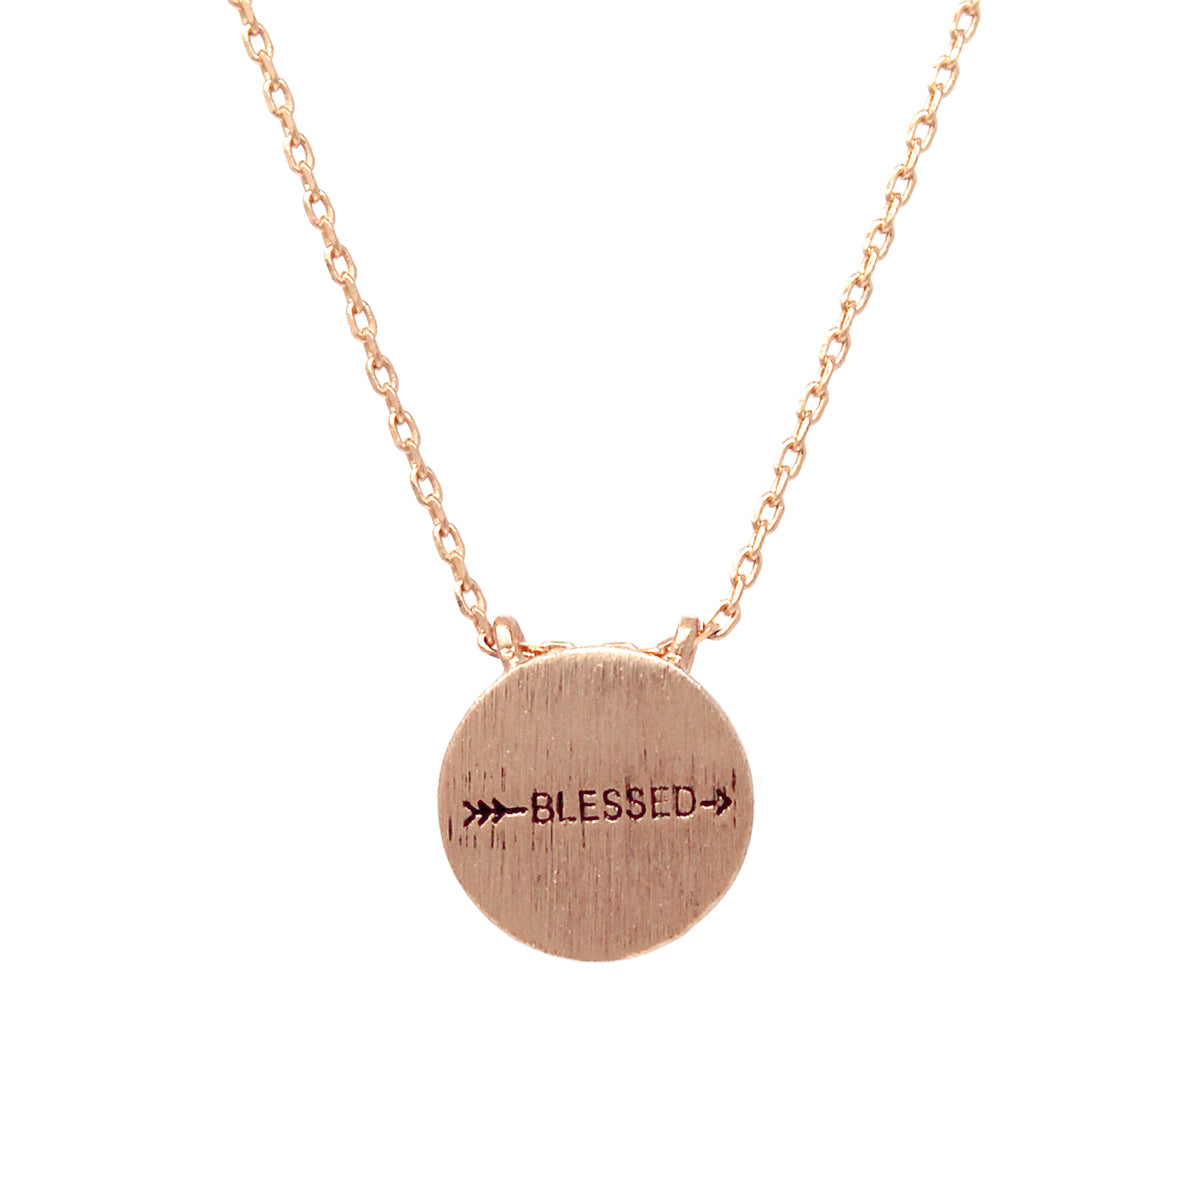 BLESSED Engraved Disc Pendant Simple Chain Short Necklace